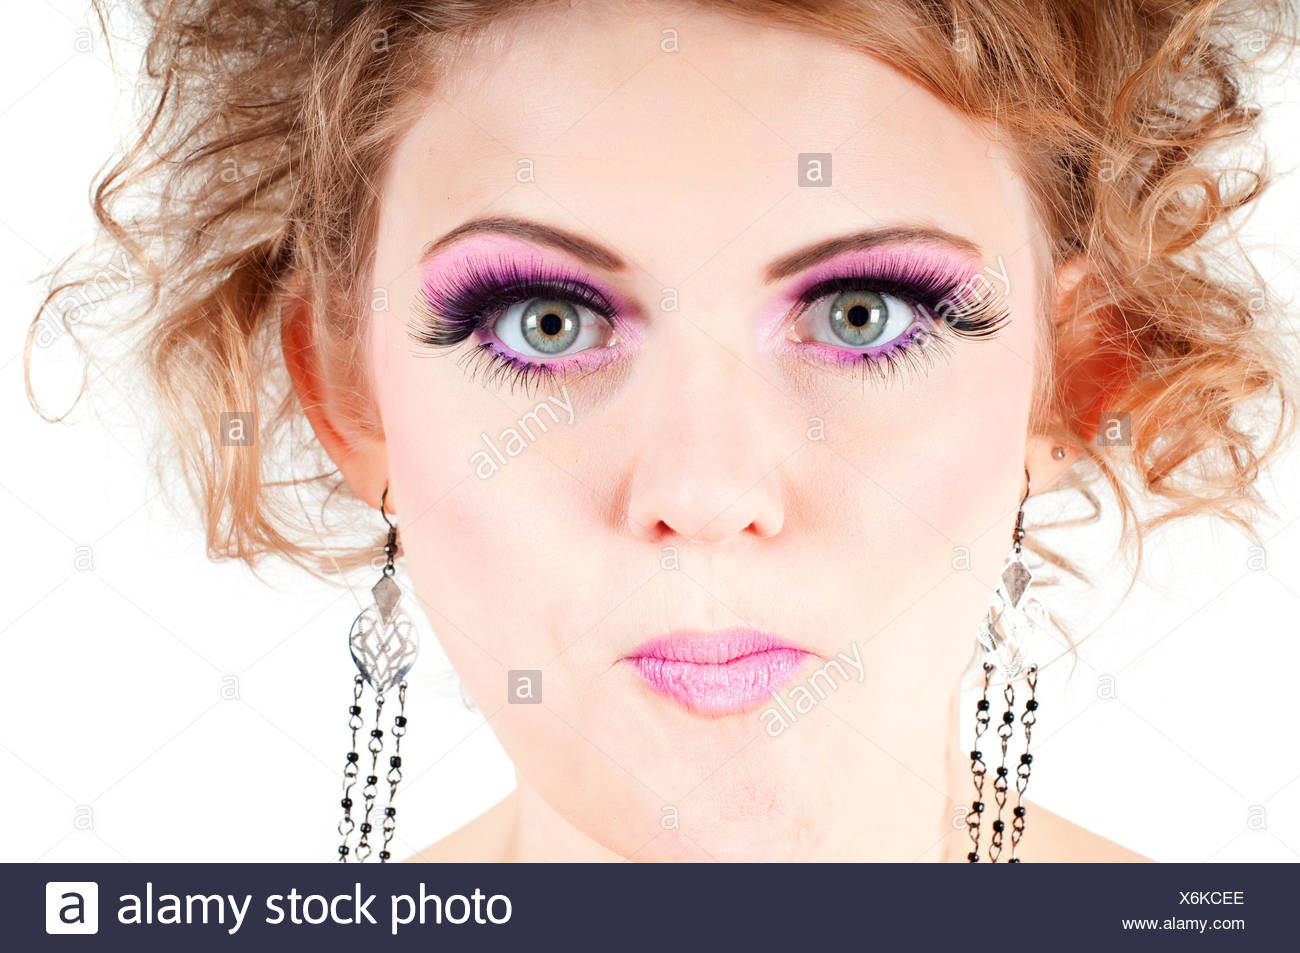 Blonde with fancy make-up grimacing Stock Photo